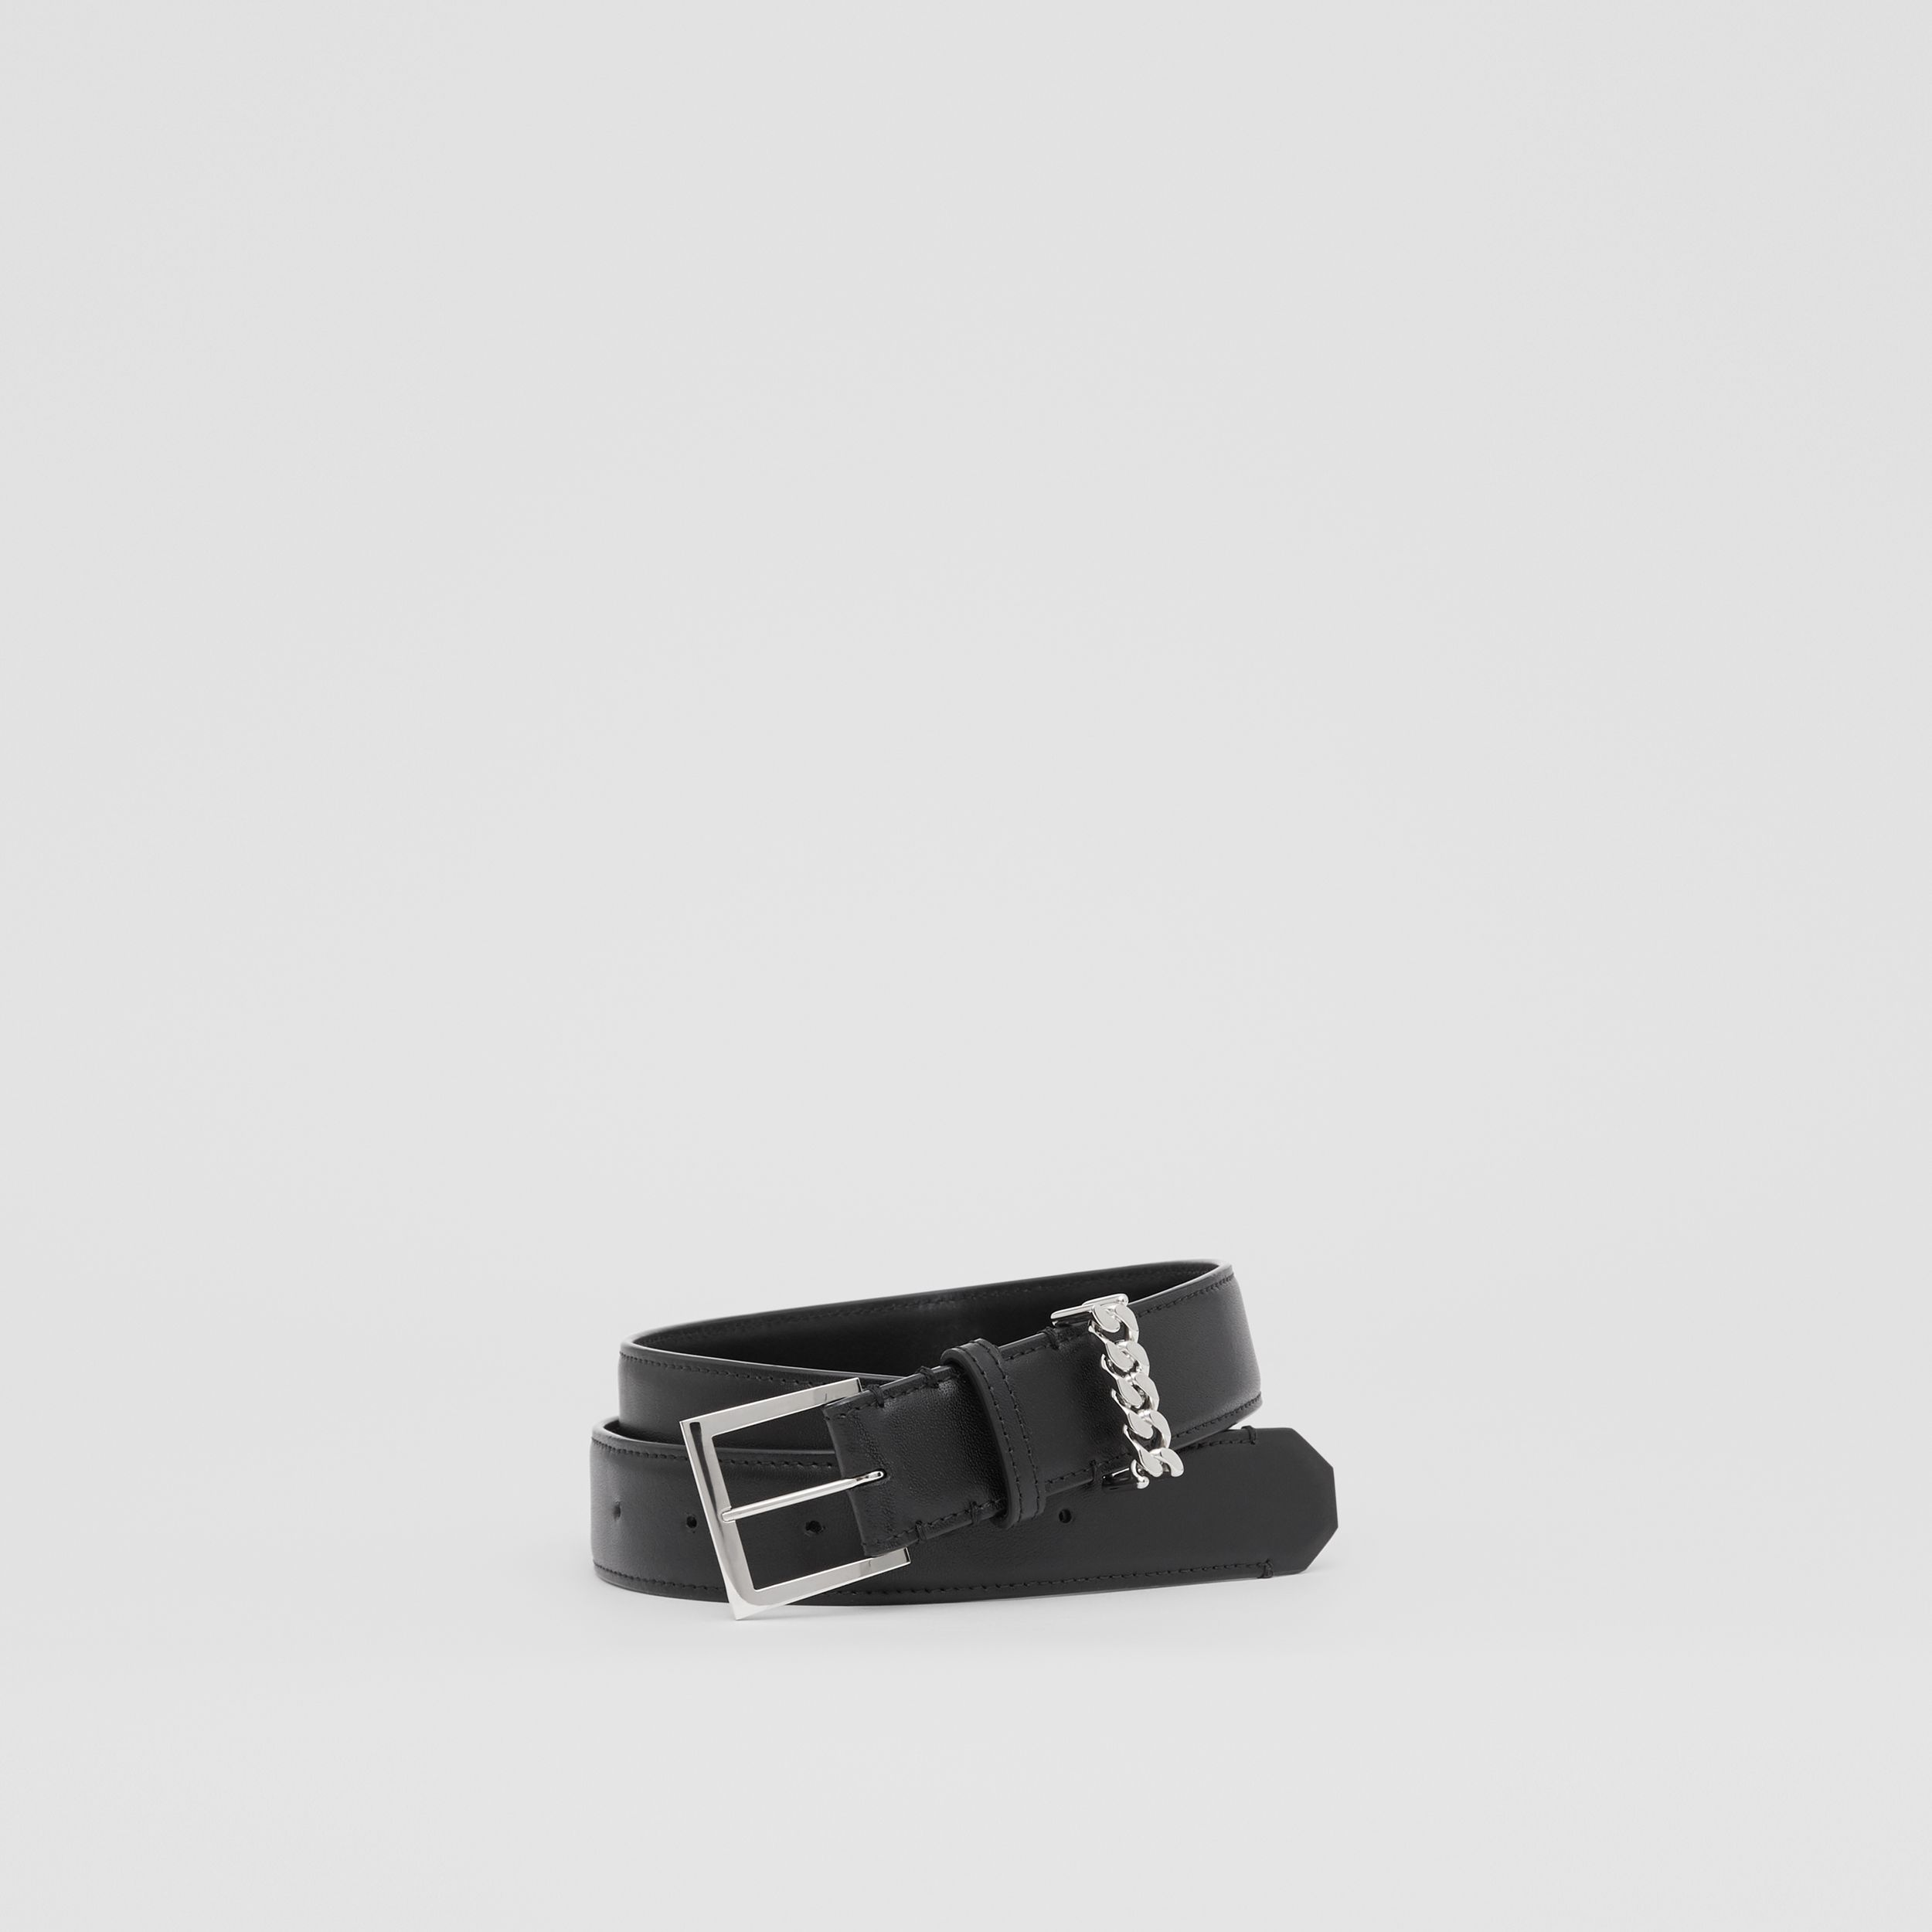 Chain Detail Leather Belt in Black/palladium | Burberry Singapore - 1